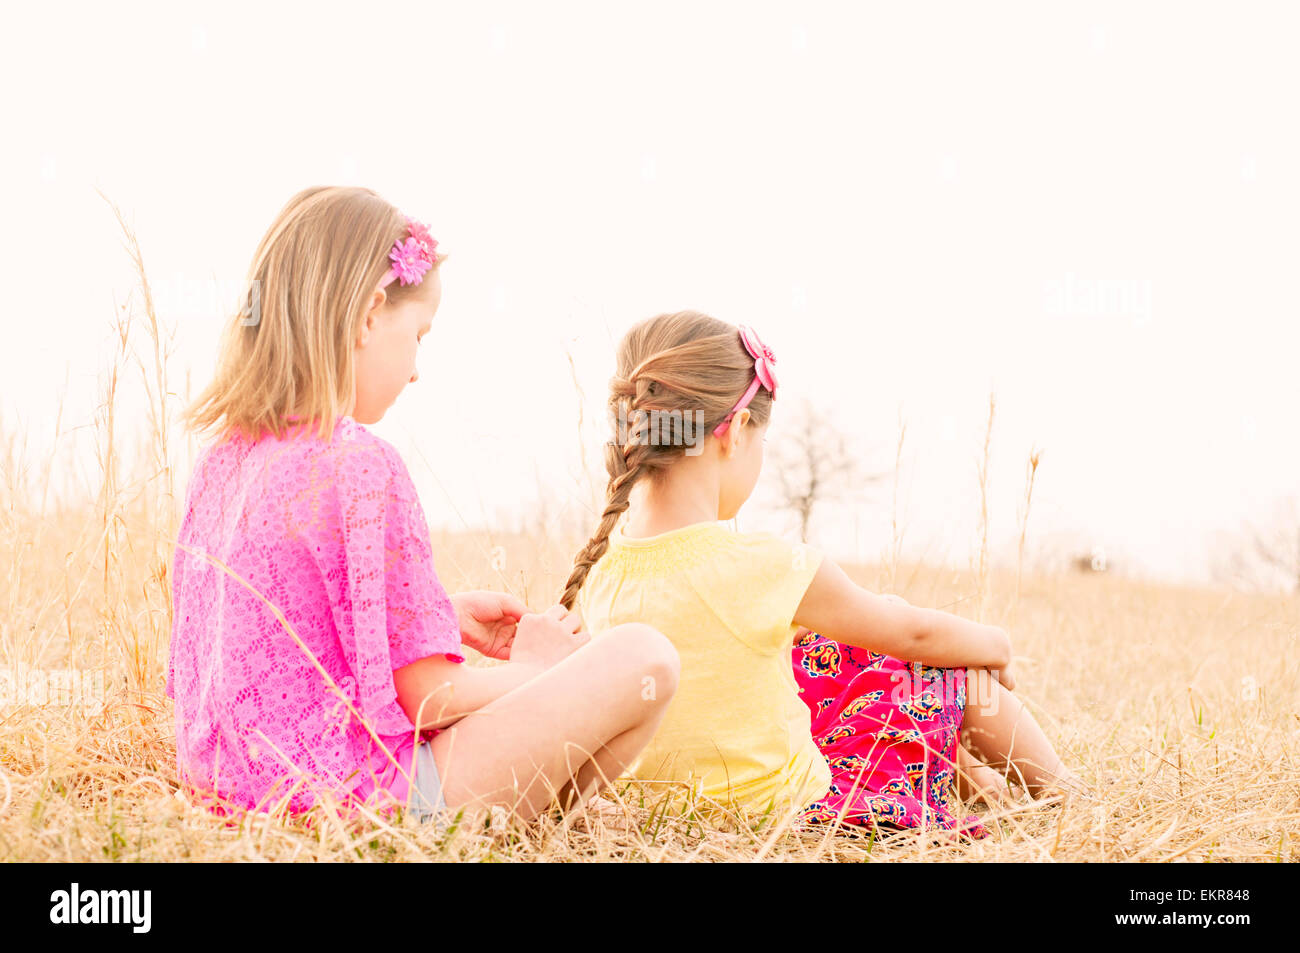 Girls braiding hair in meadow - Stock Image